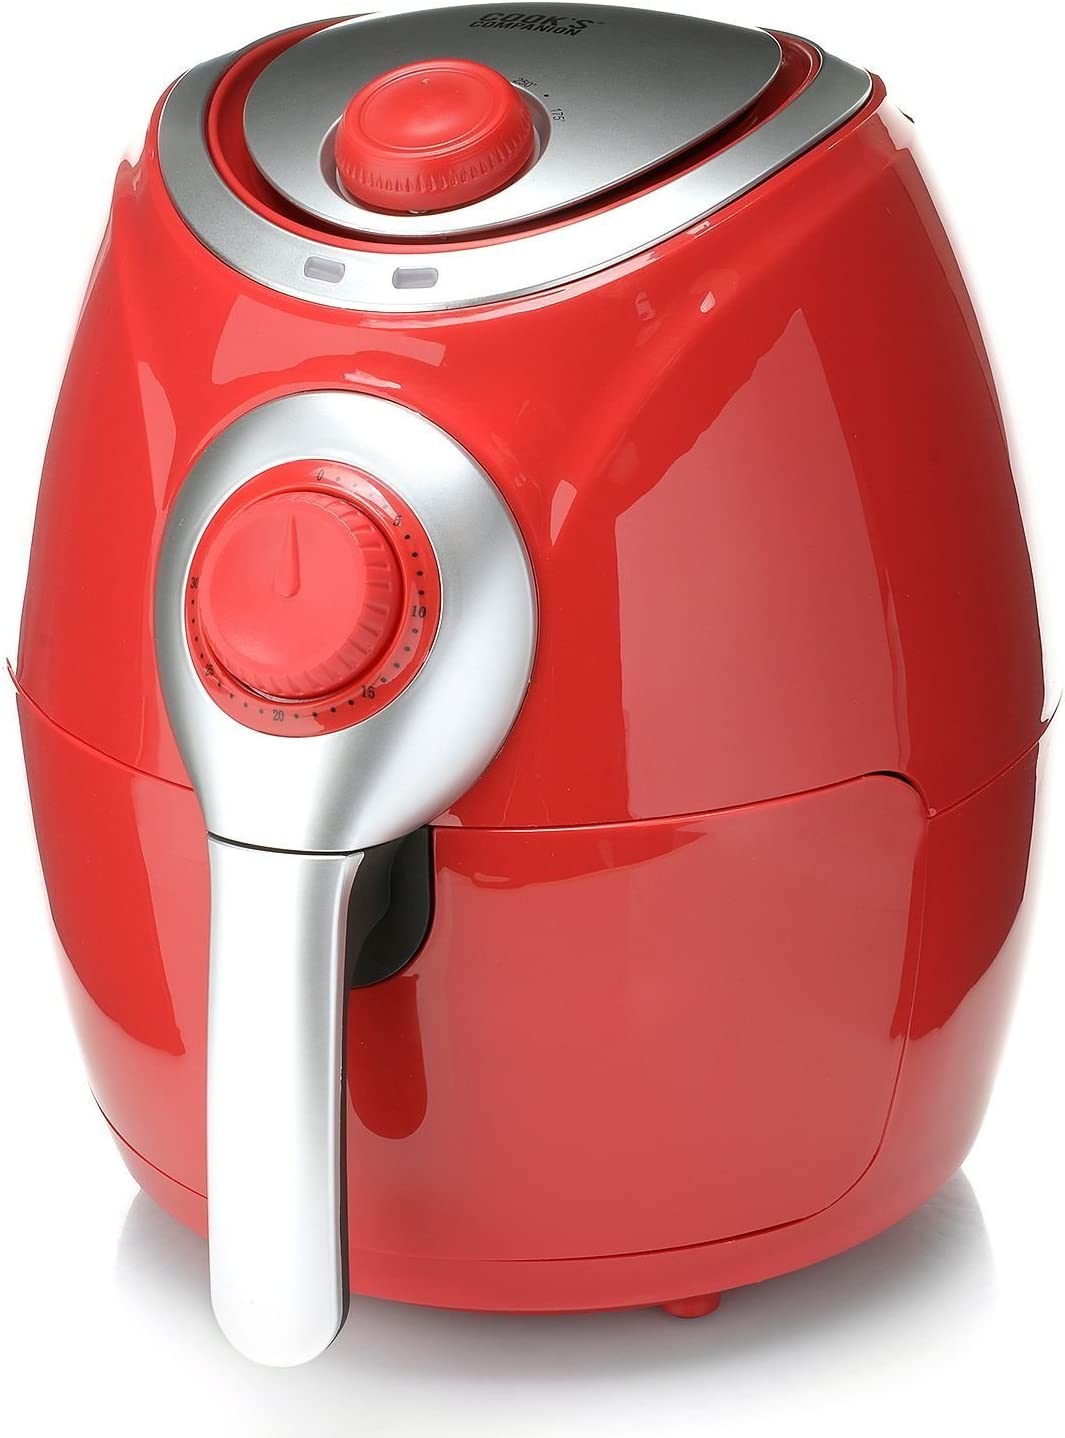 Cook's Companion Air Fryer (Red)